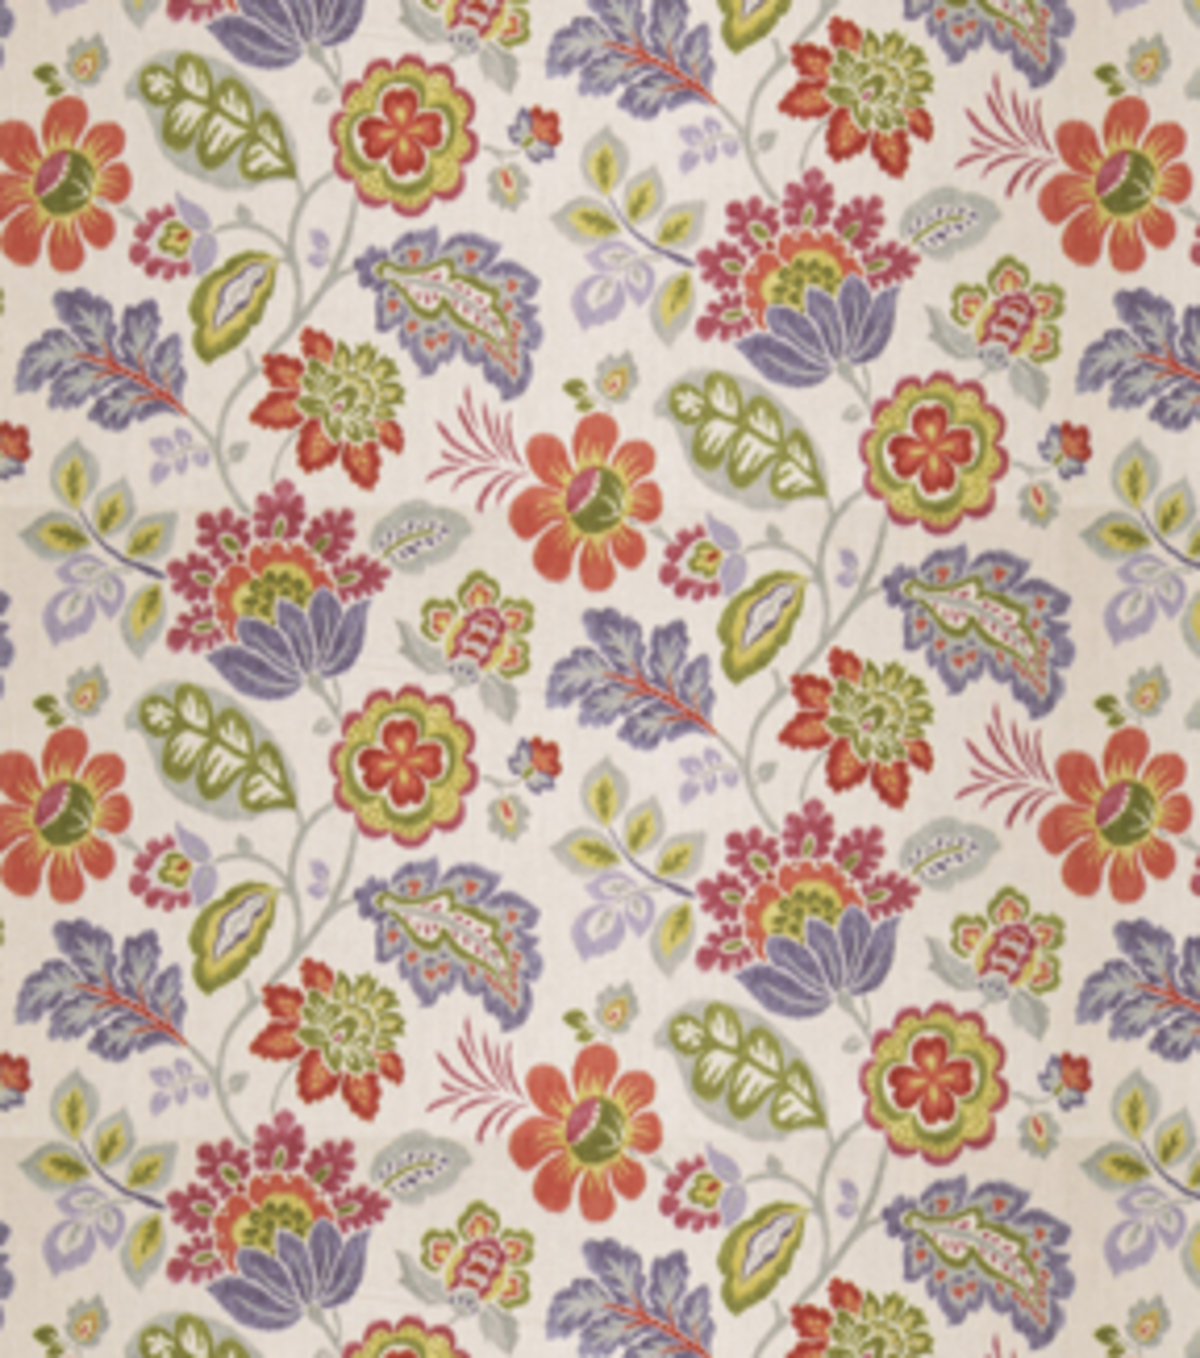 Home Decor 8\u0022x8\u0022 Fabric Swatch-Eaton Square Inheritance Exotic Berry